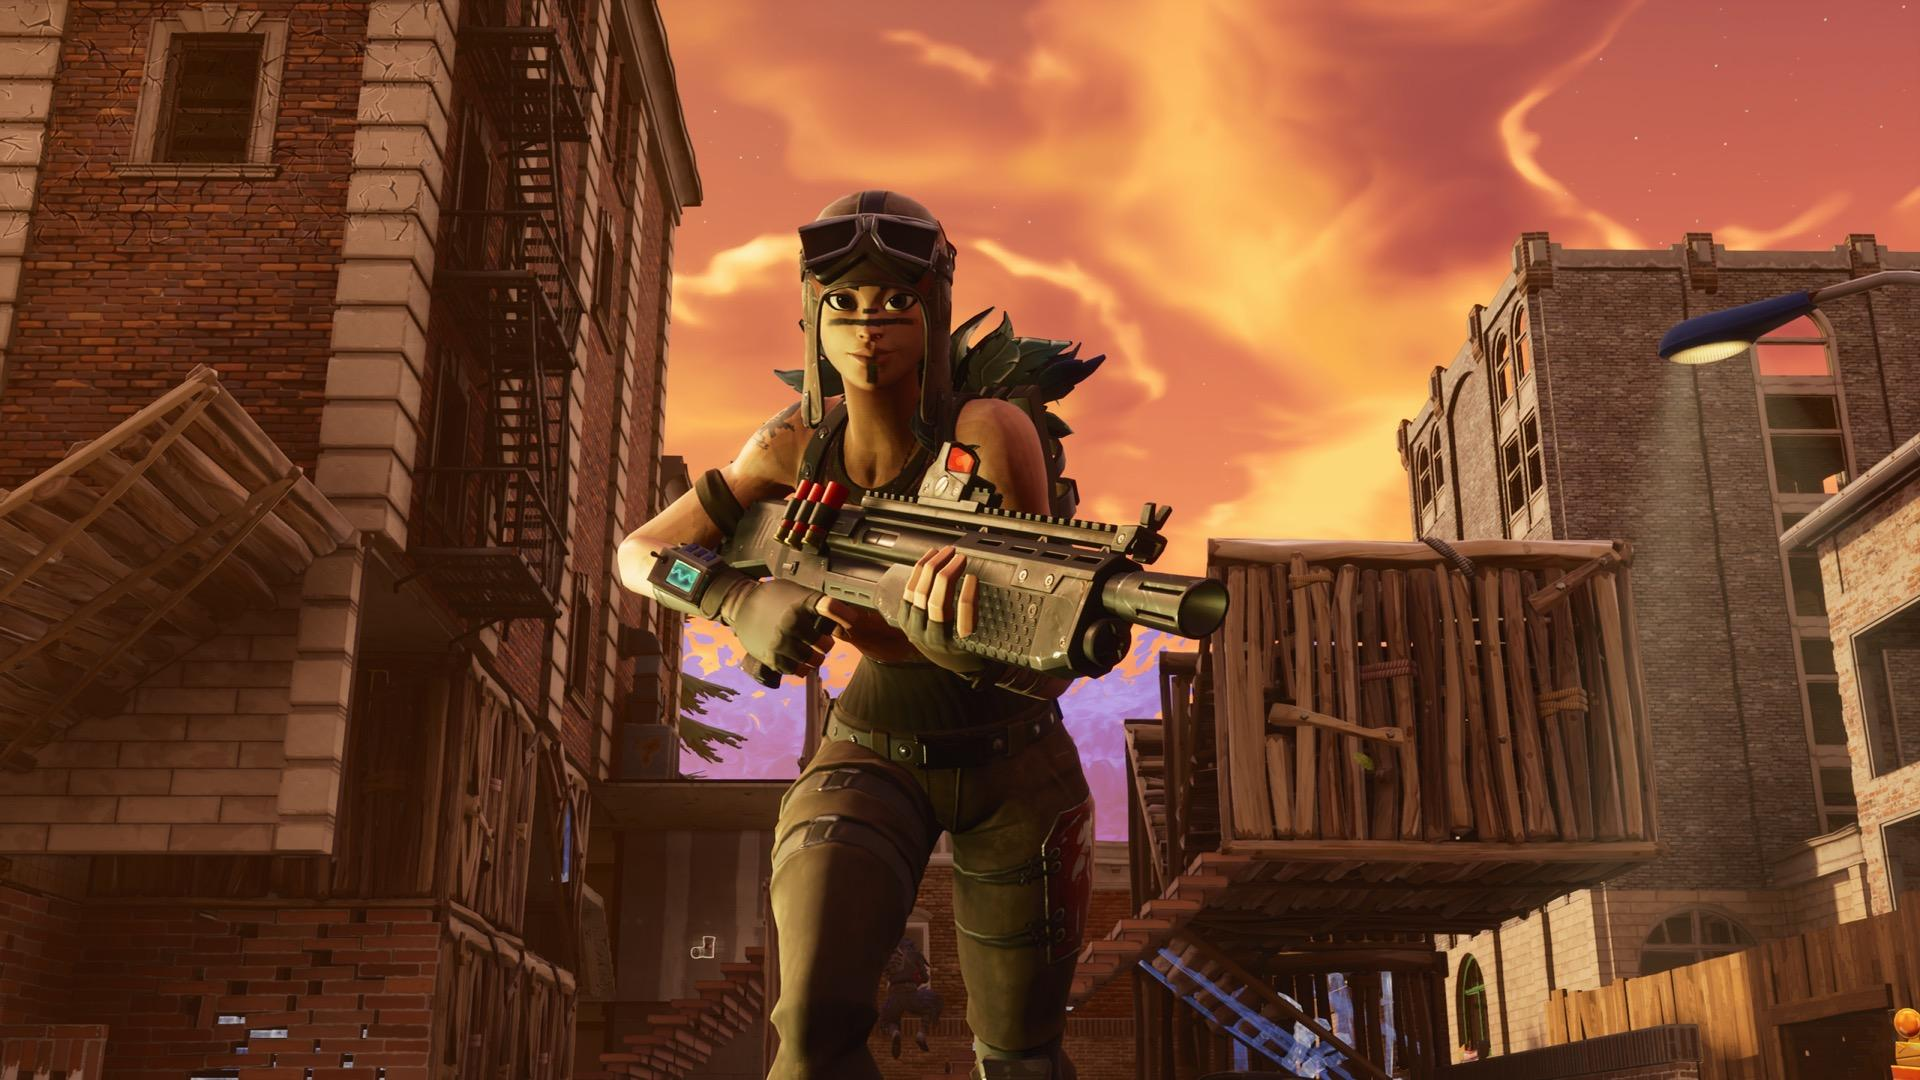 Fortnite Renegade Raider Wallpapers Top Free Fortnite Renegade Raider Backgrounds Wallpaperaccess